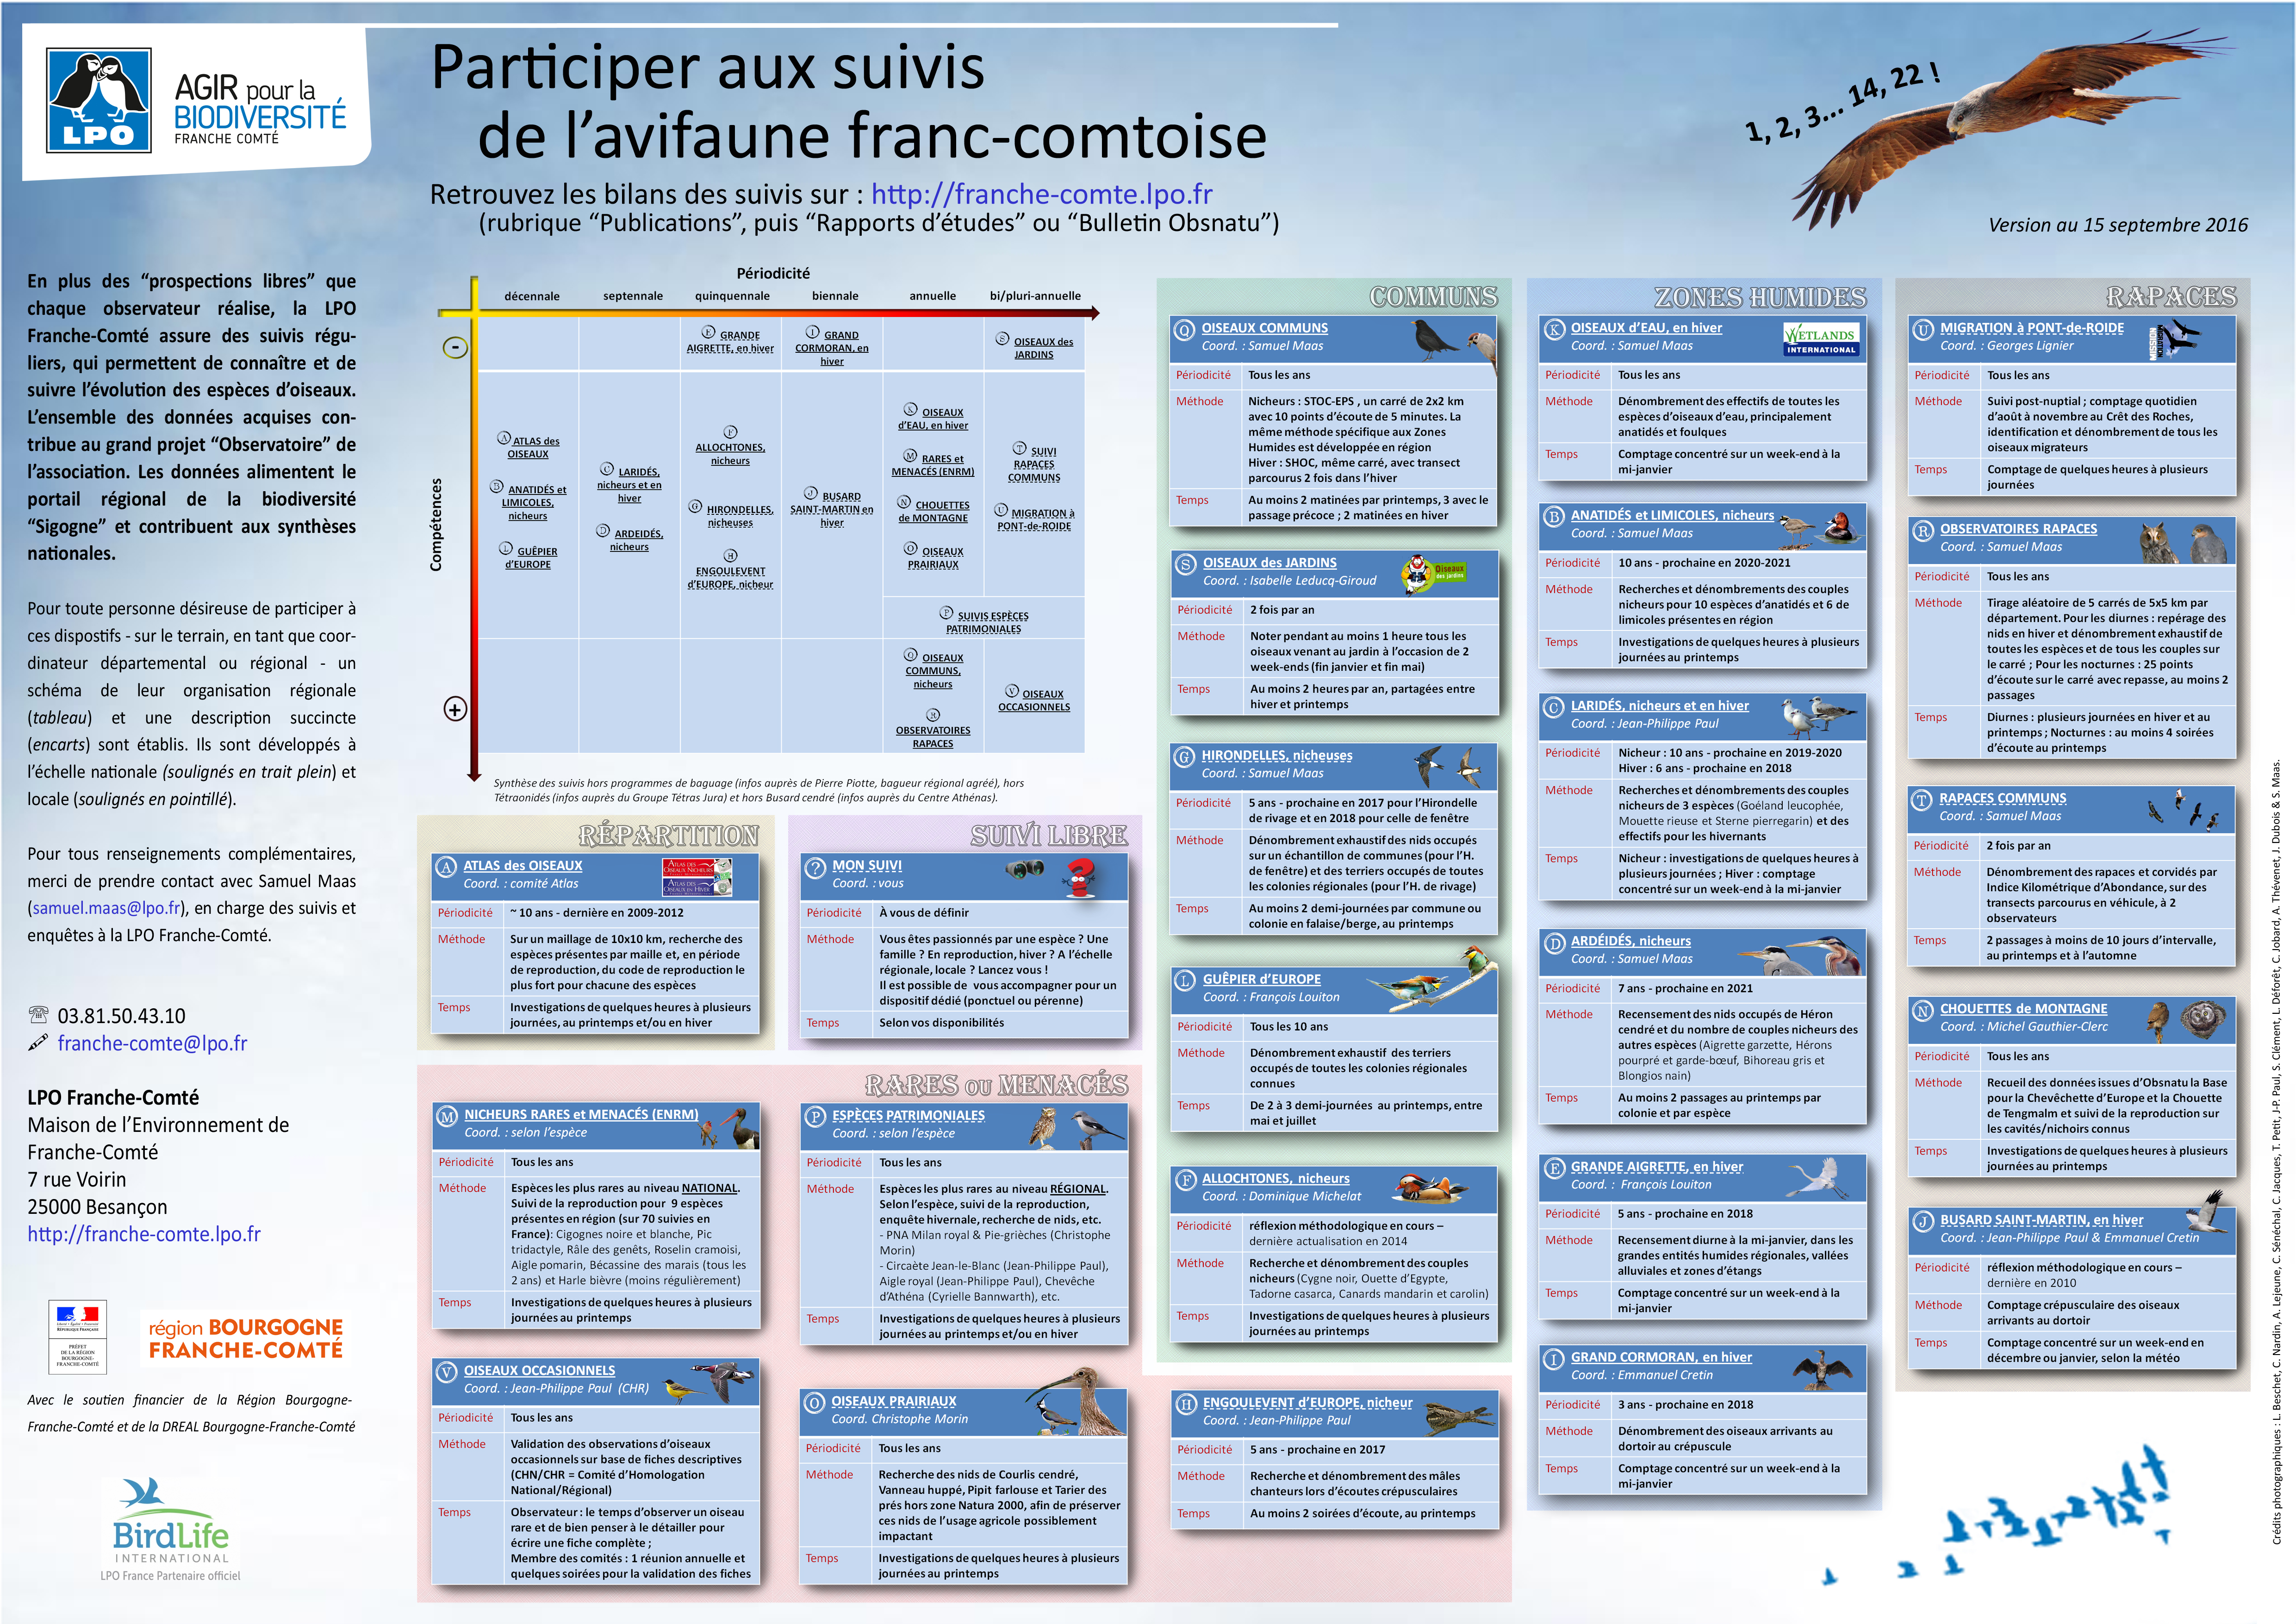 http://files.biolovision.net/franche-comte.lpo.fr/userfiles/observer/Suivis/2016WhichsurveyisformeFCFINAL.png